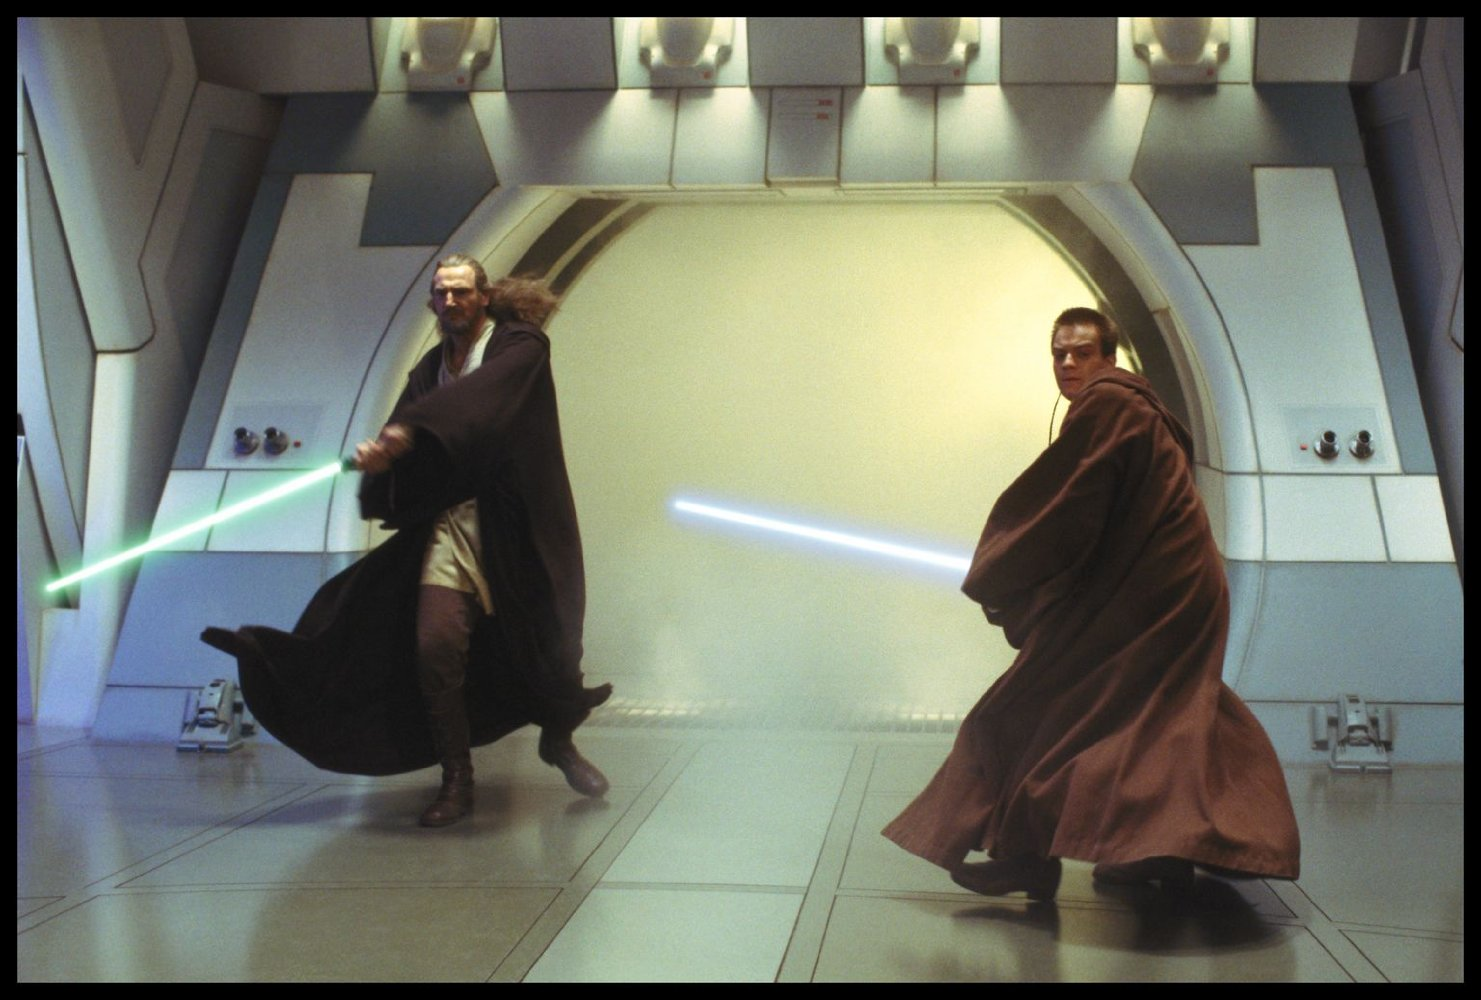 The Jedi are more badass than you can imagine.